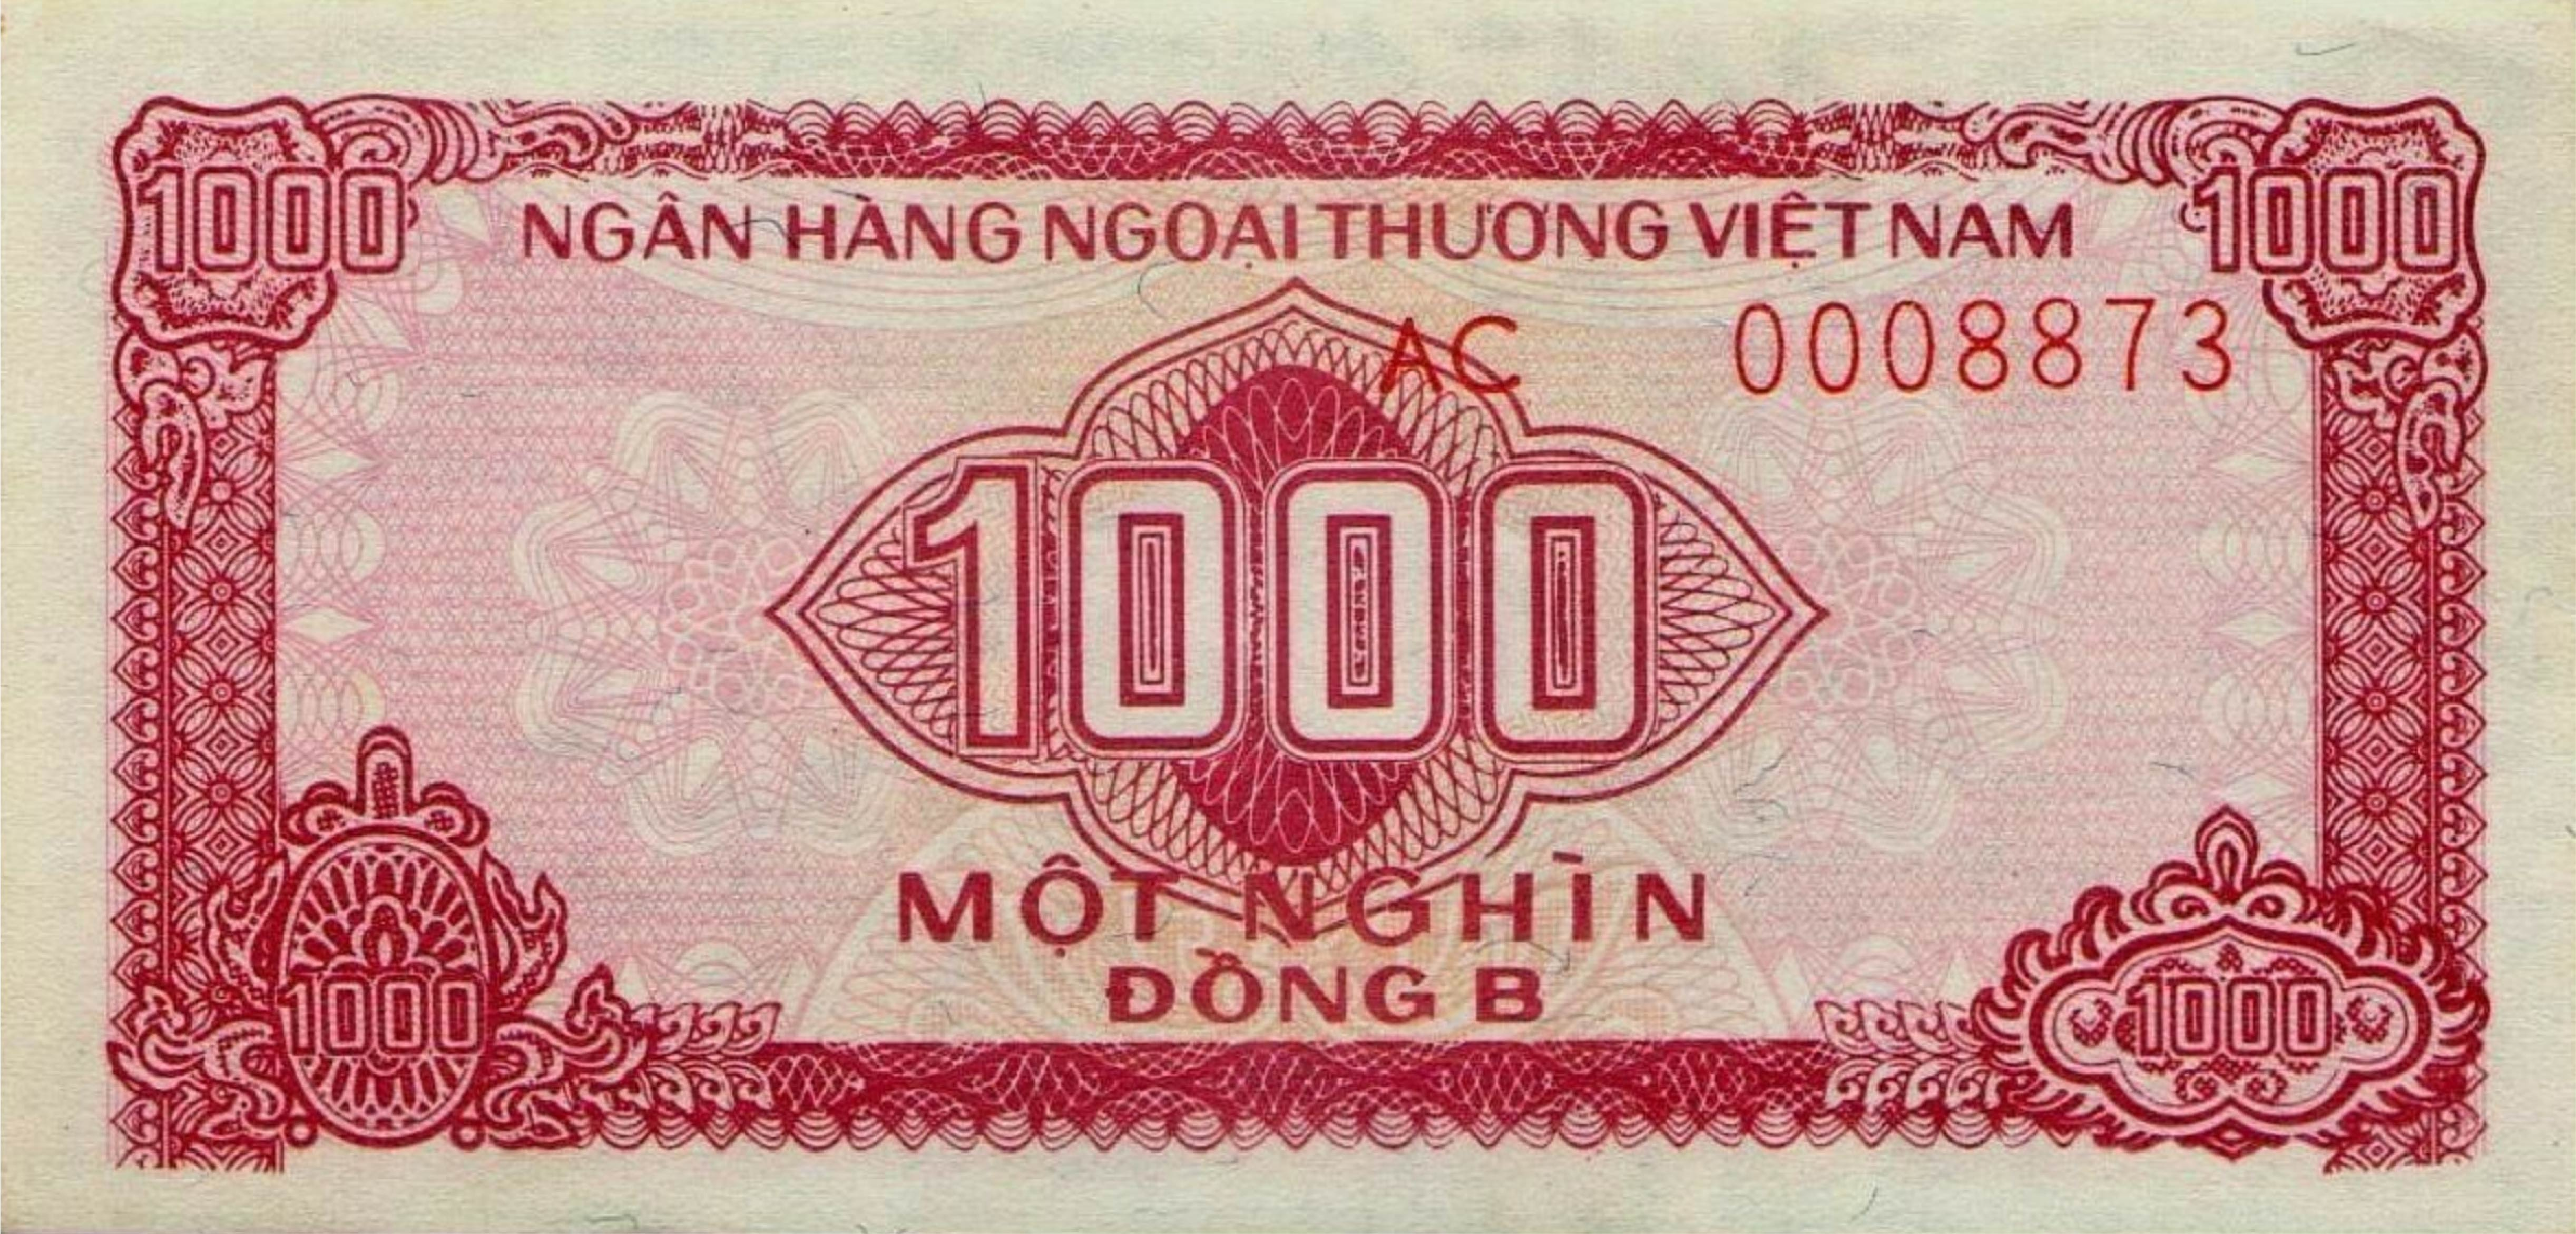 1000 Vietnamese Dong Foreign Exchange Certificate Exchange Yours